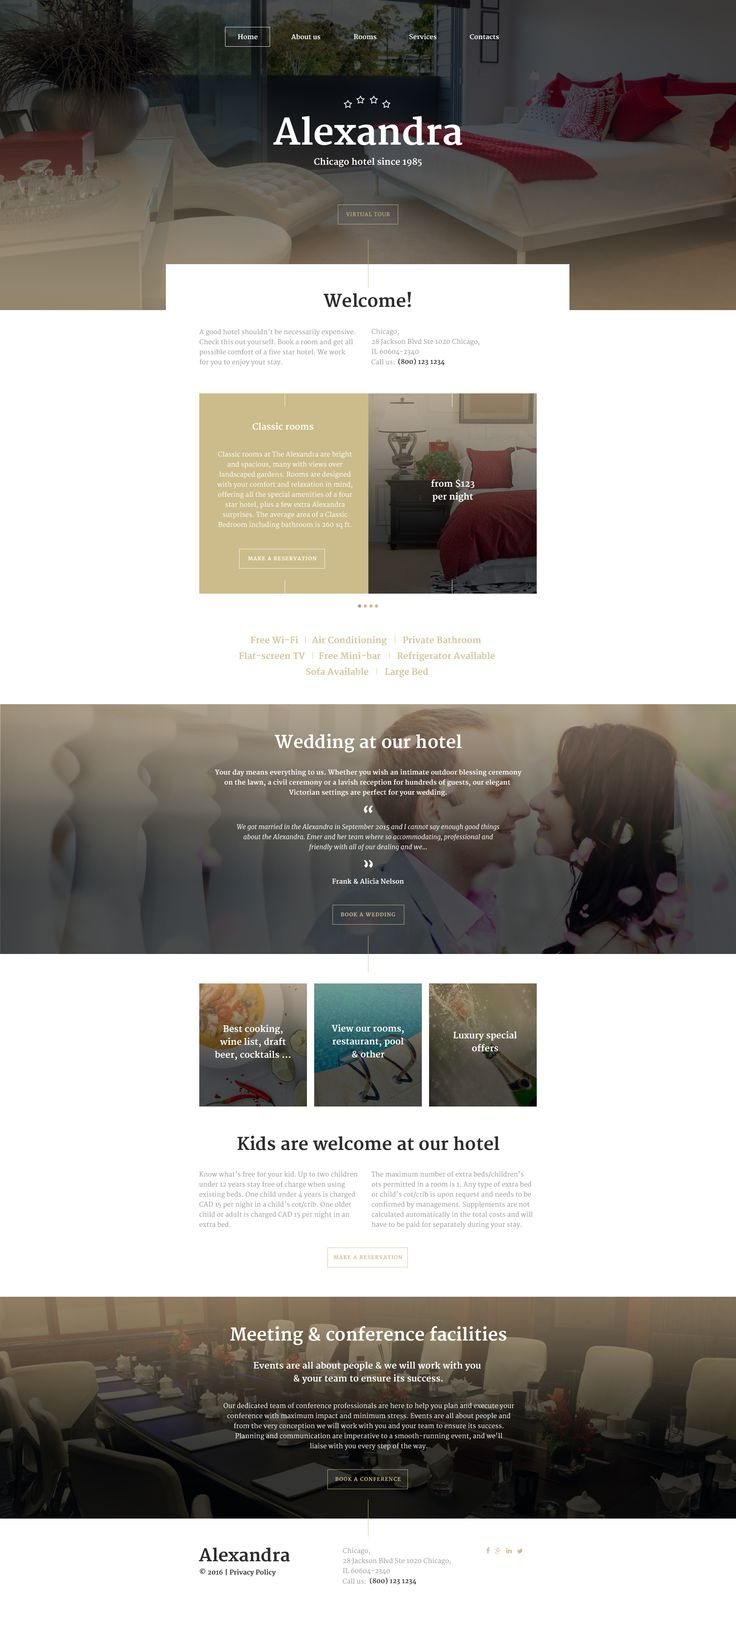 High School Website design layout ideas and templates please...?